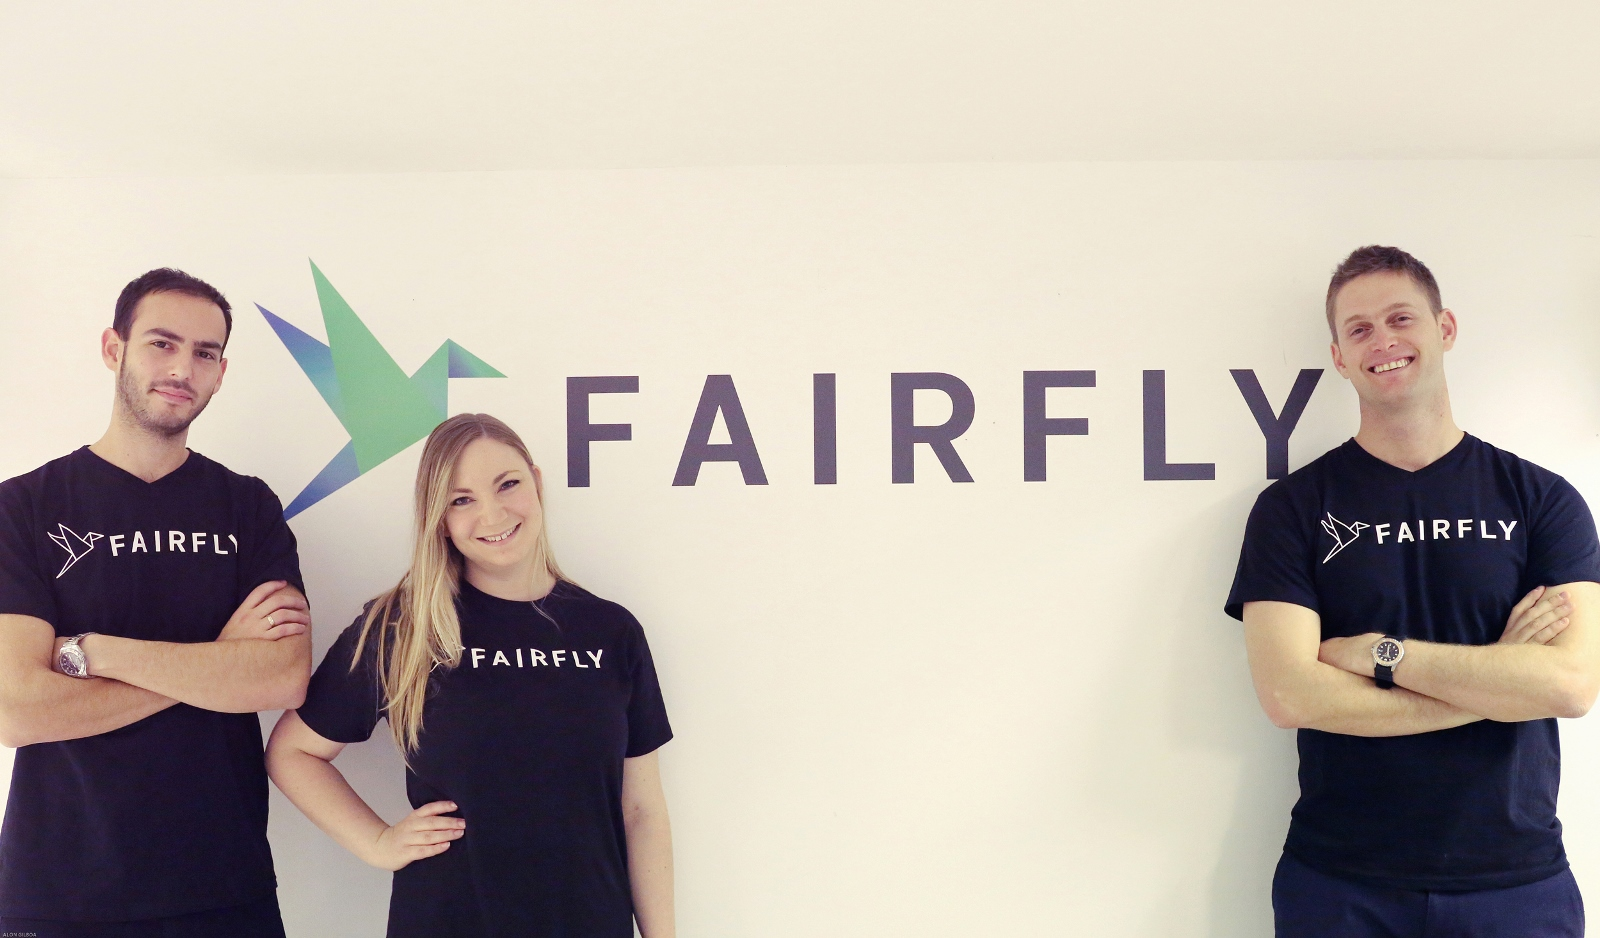 FairFly cofounders, from left , Ami Goldenberg, Gili Lichtman and Aviel Siman-Tov. Photo: courtesy